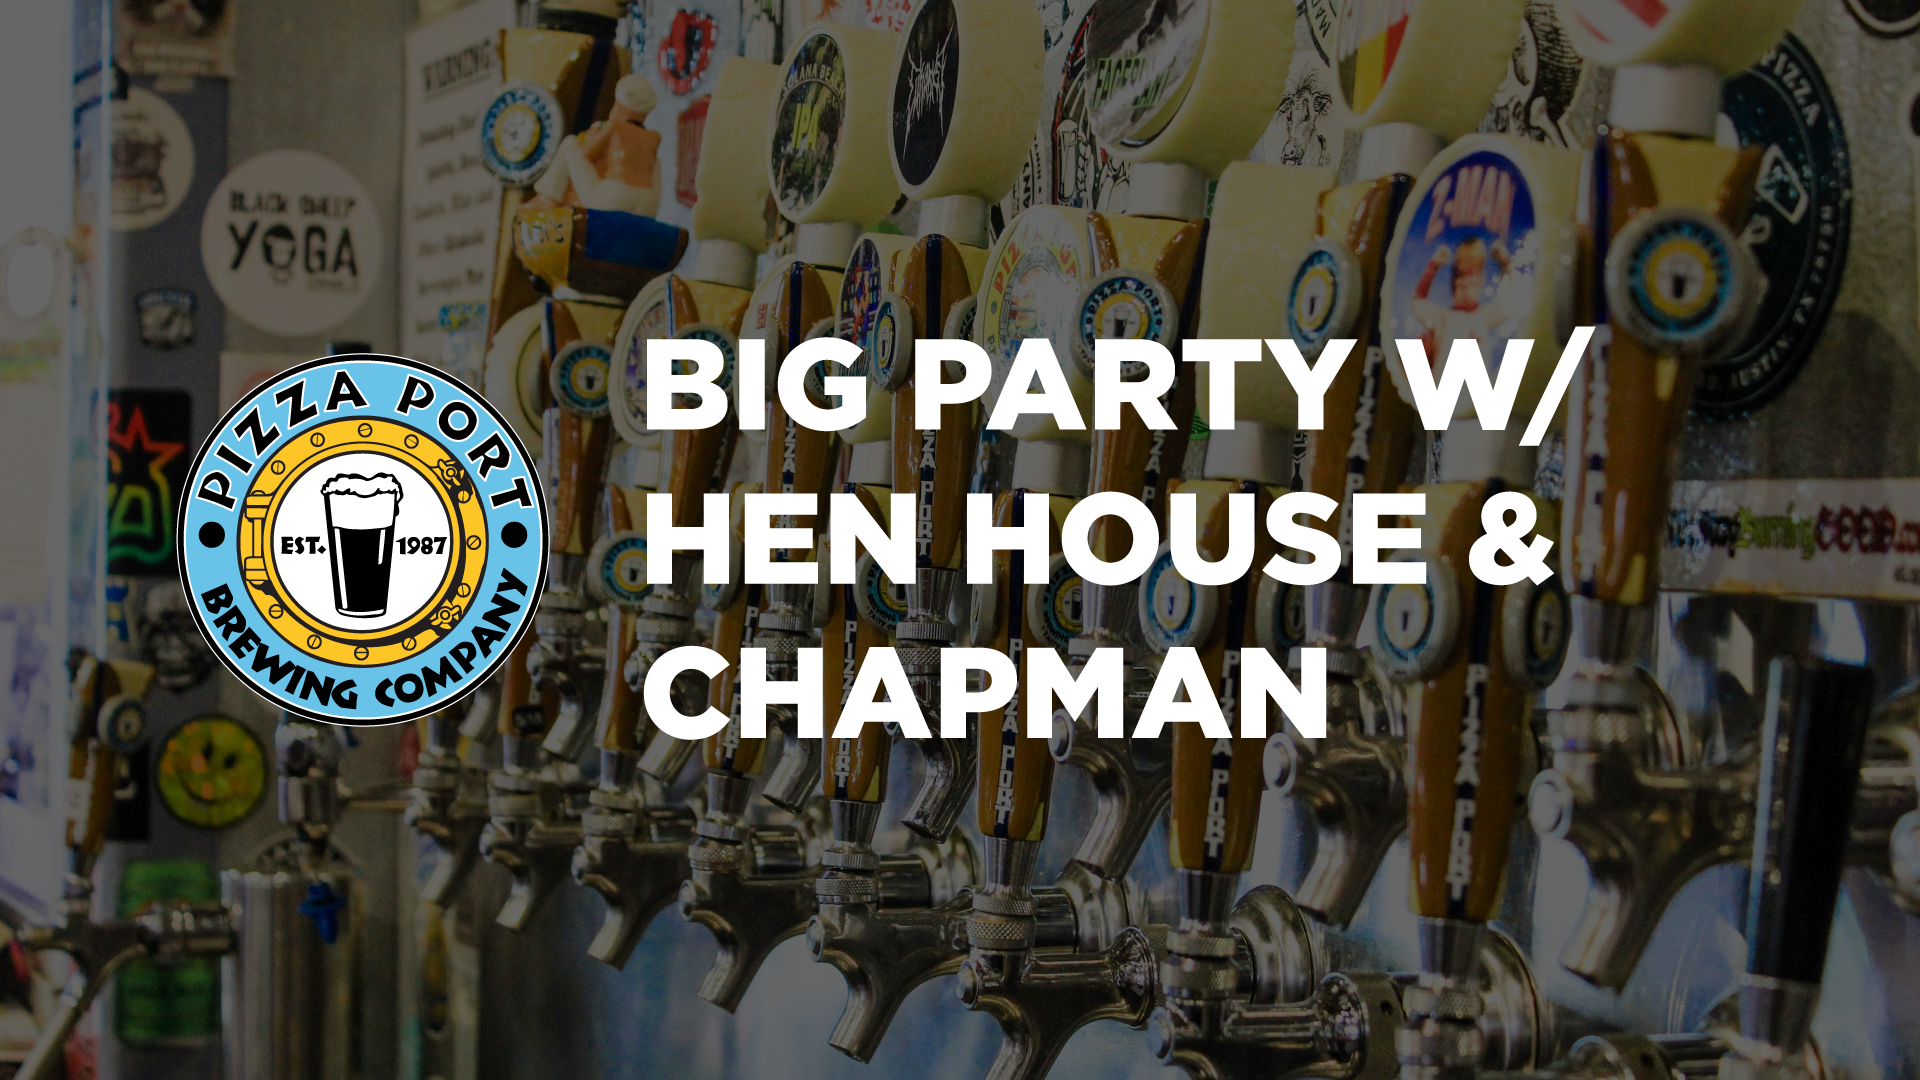 Big Party w/ Hen House & Chapman